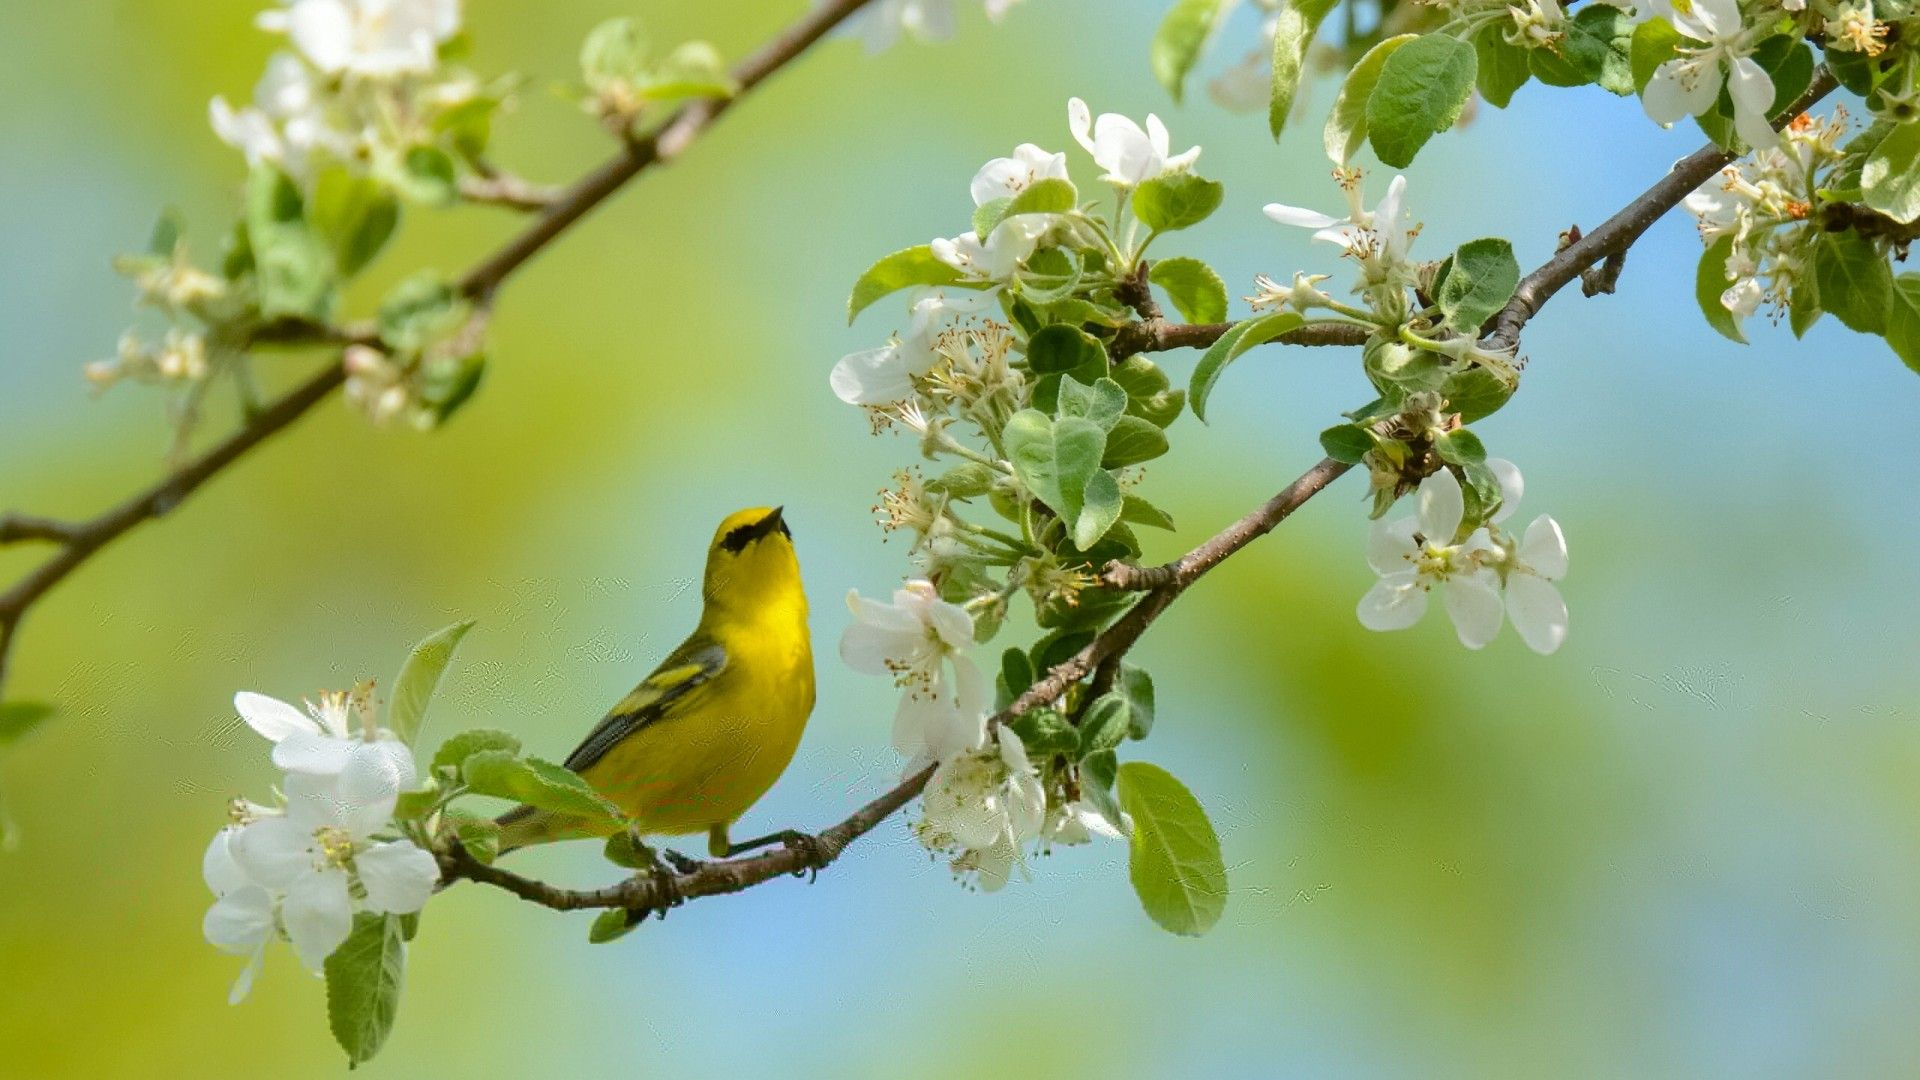 Birds And Trees download wallpaper image